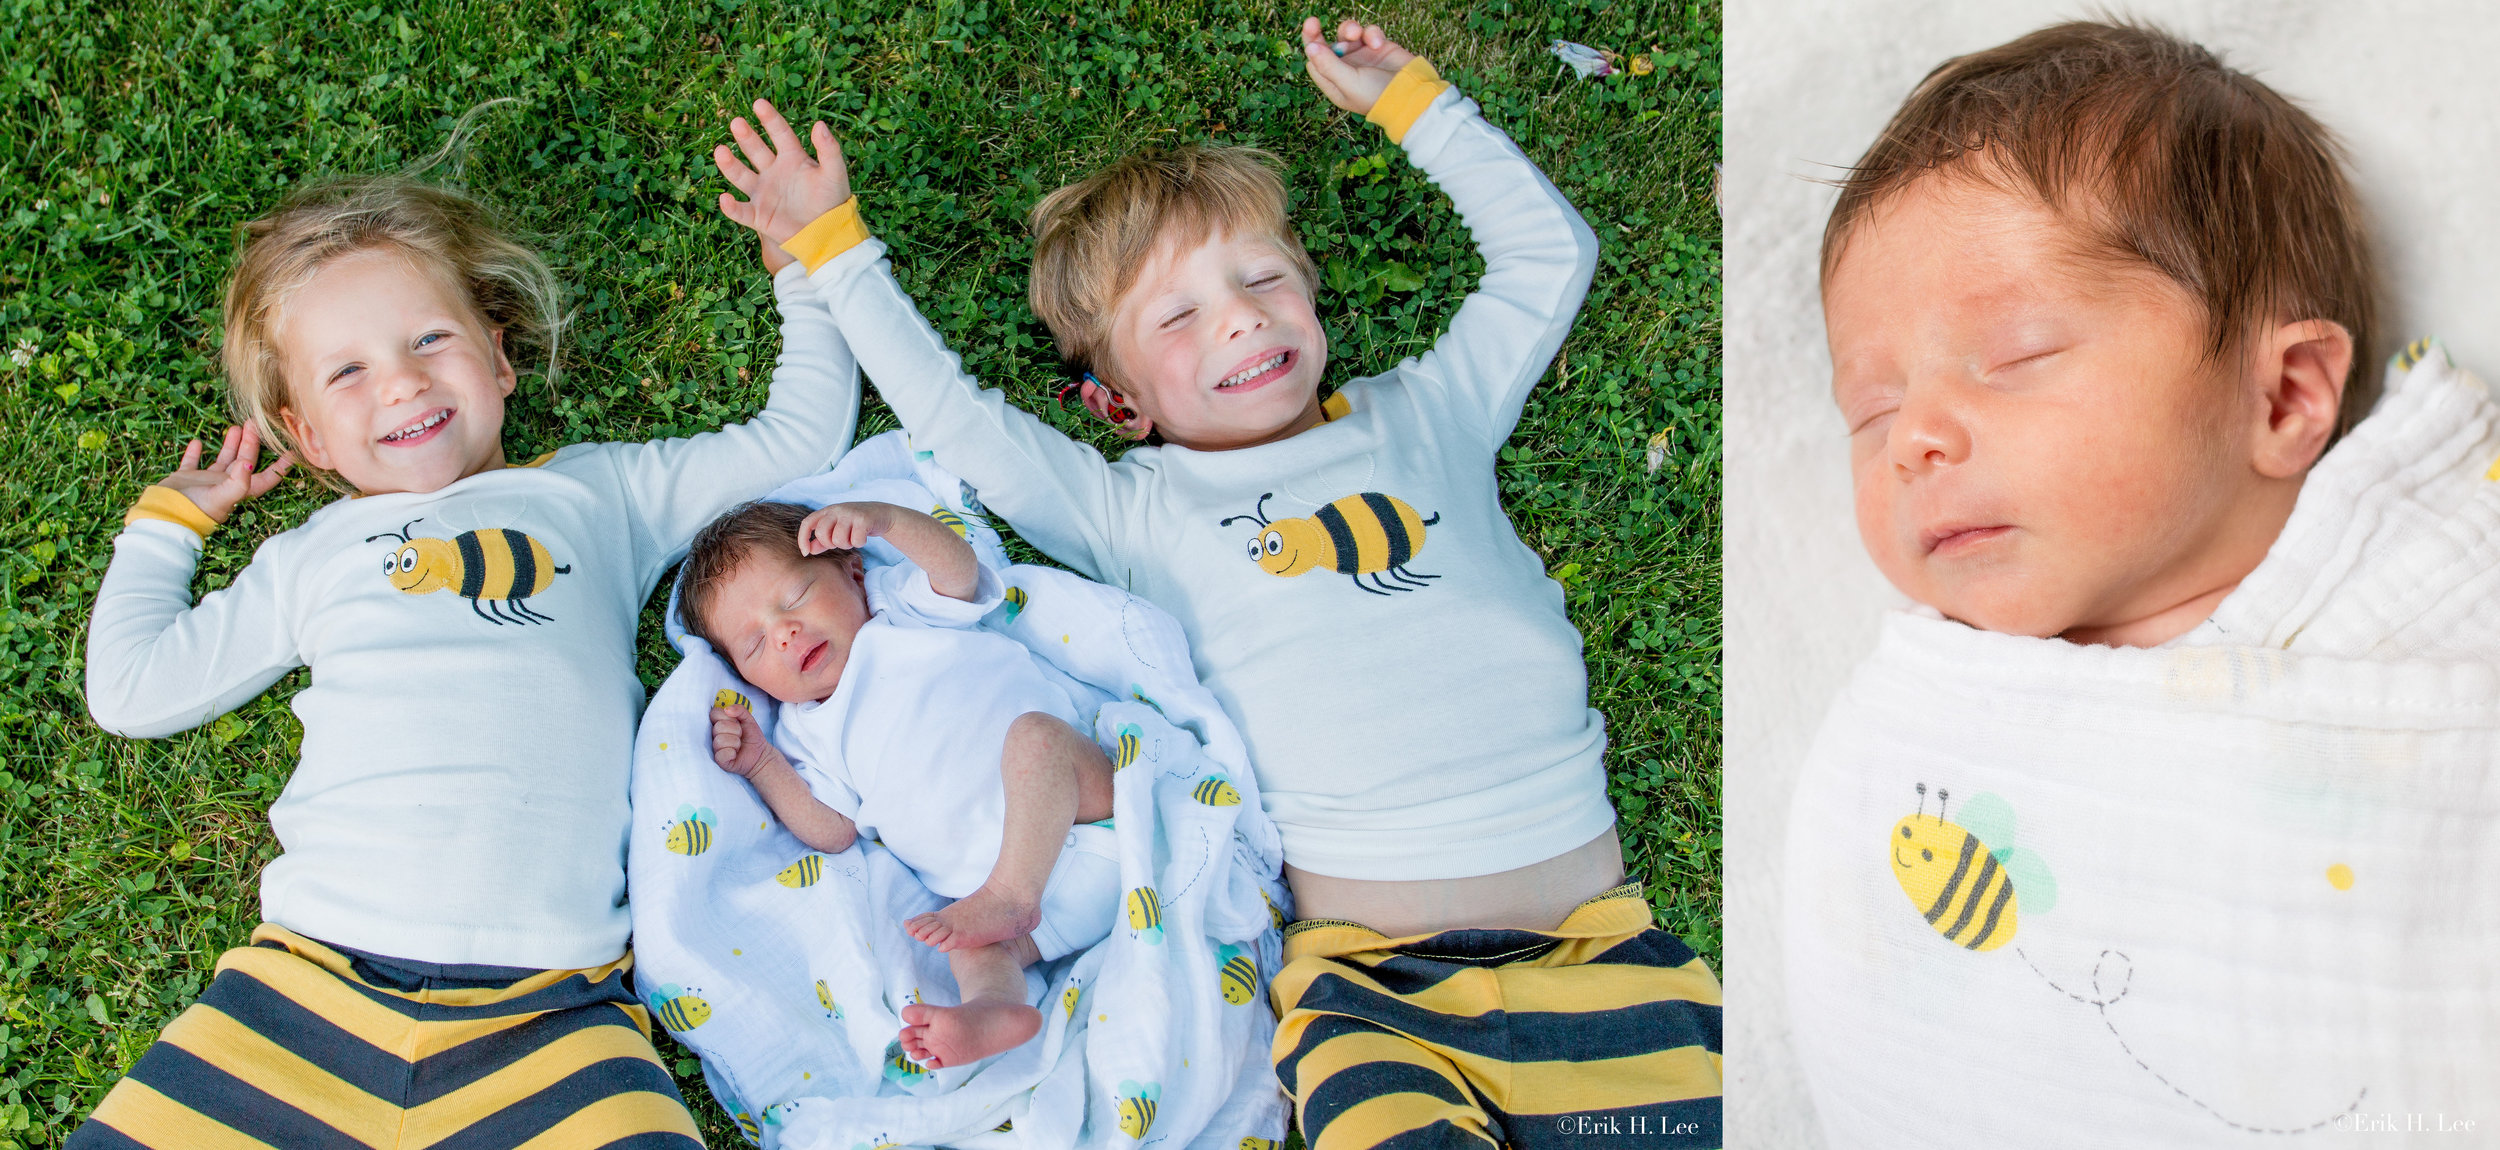 """The Three Bees (Bennett, Blake & Brynn) - Birth Announcement  I have been documenting the births in this family for quite a while now. Imagine three kids all under 4 years old at the time these images were taken? Mom had a great idea to put them all in """"Bee Pajamas"""" for these captures as all their names begin with a """"B"""". The smallest Bee is only weeks old in these images."""